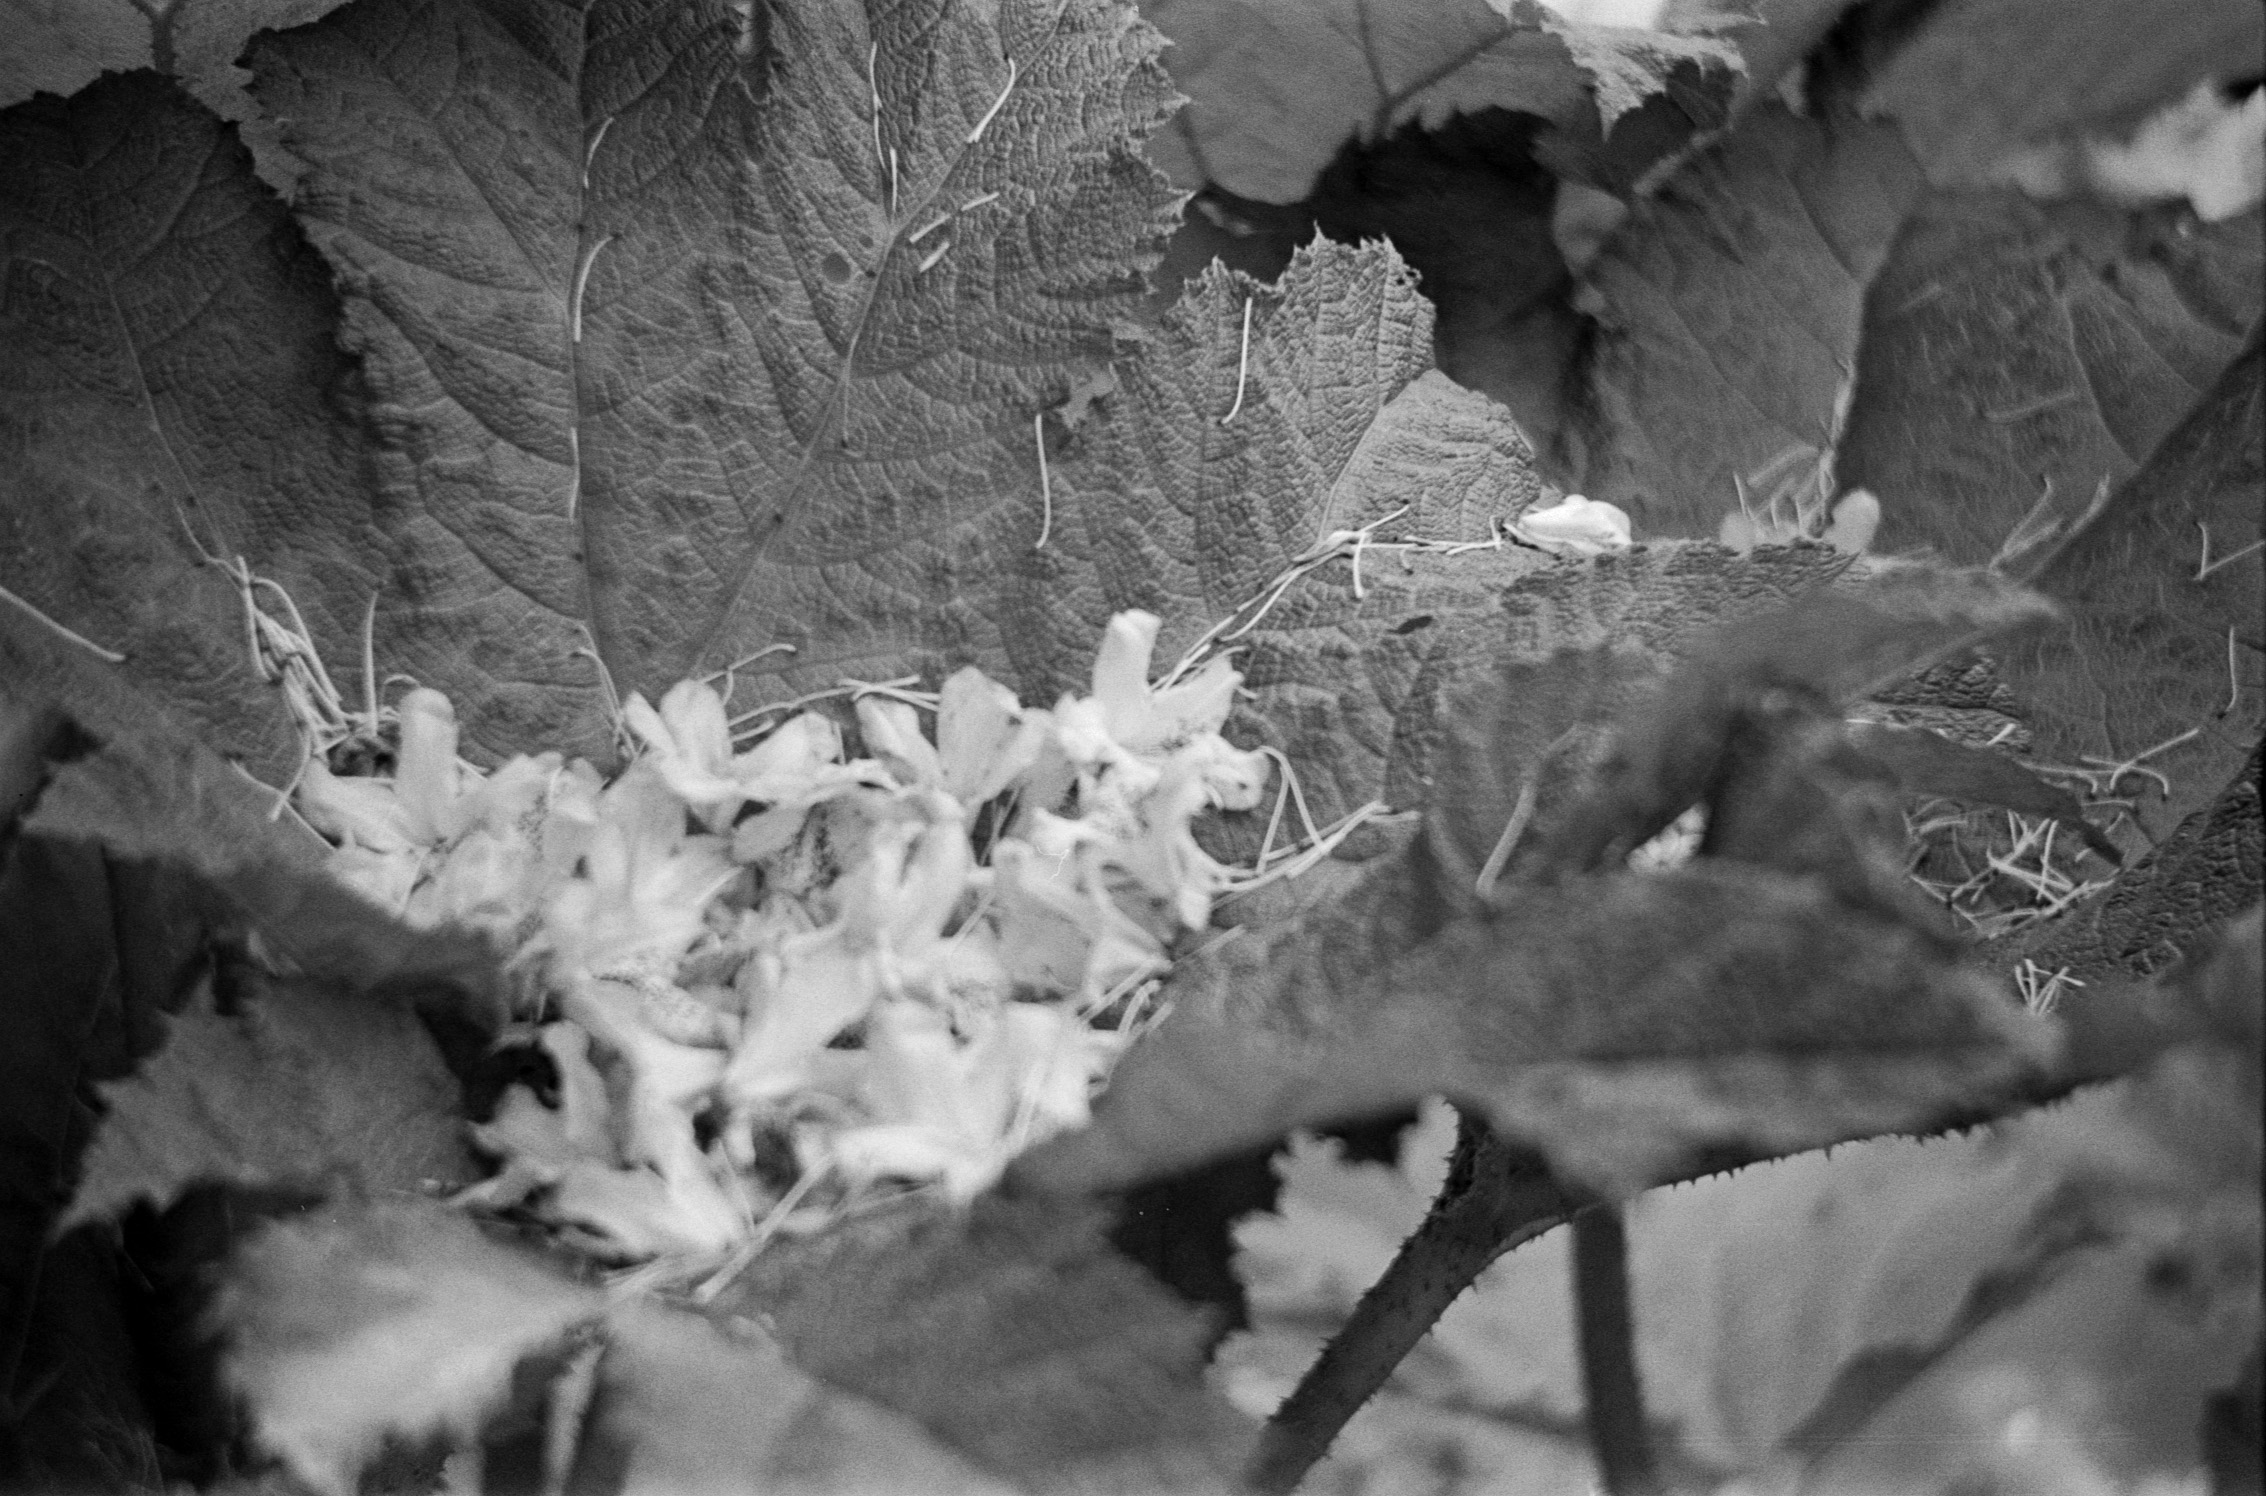 Film: Kodak T-Max 400 B&W  Camera: Voigtländer Vitoret DR  Location: Kilmacurragh Botanic Gardens, Co. Wicklow, Ireland